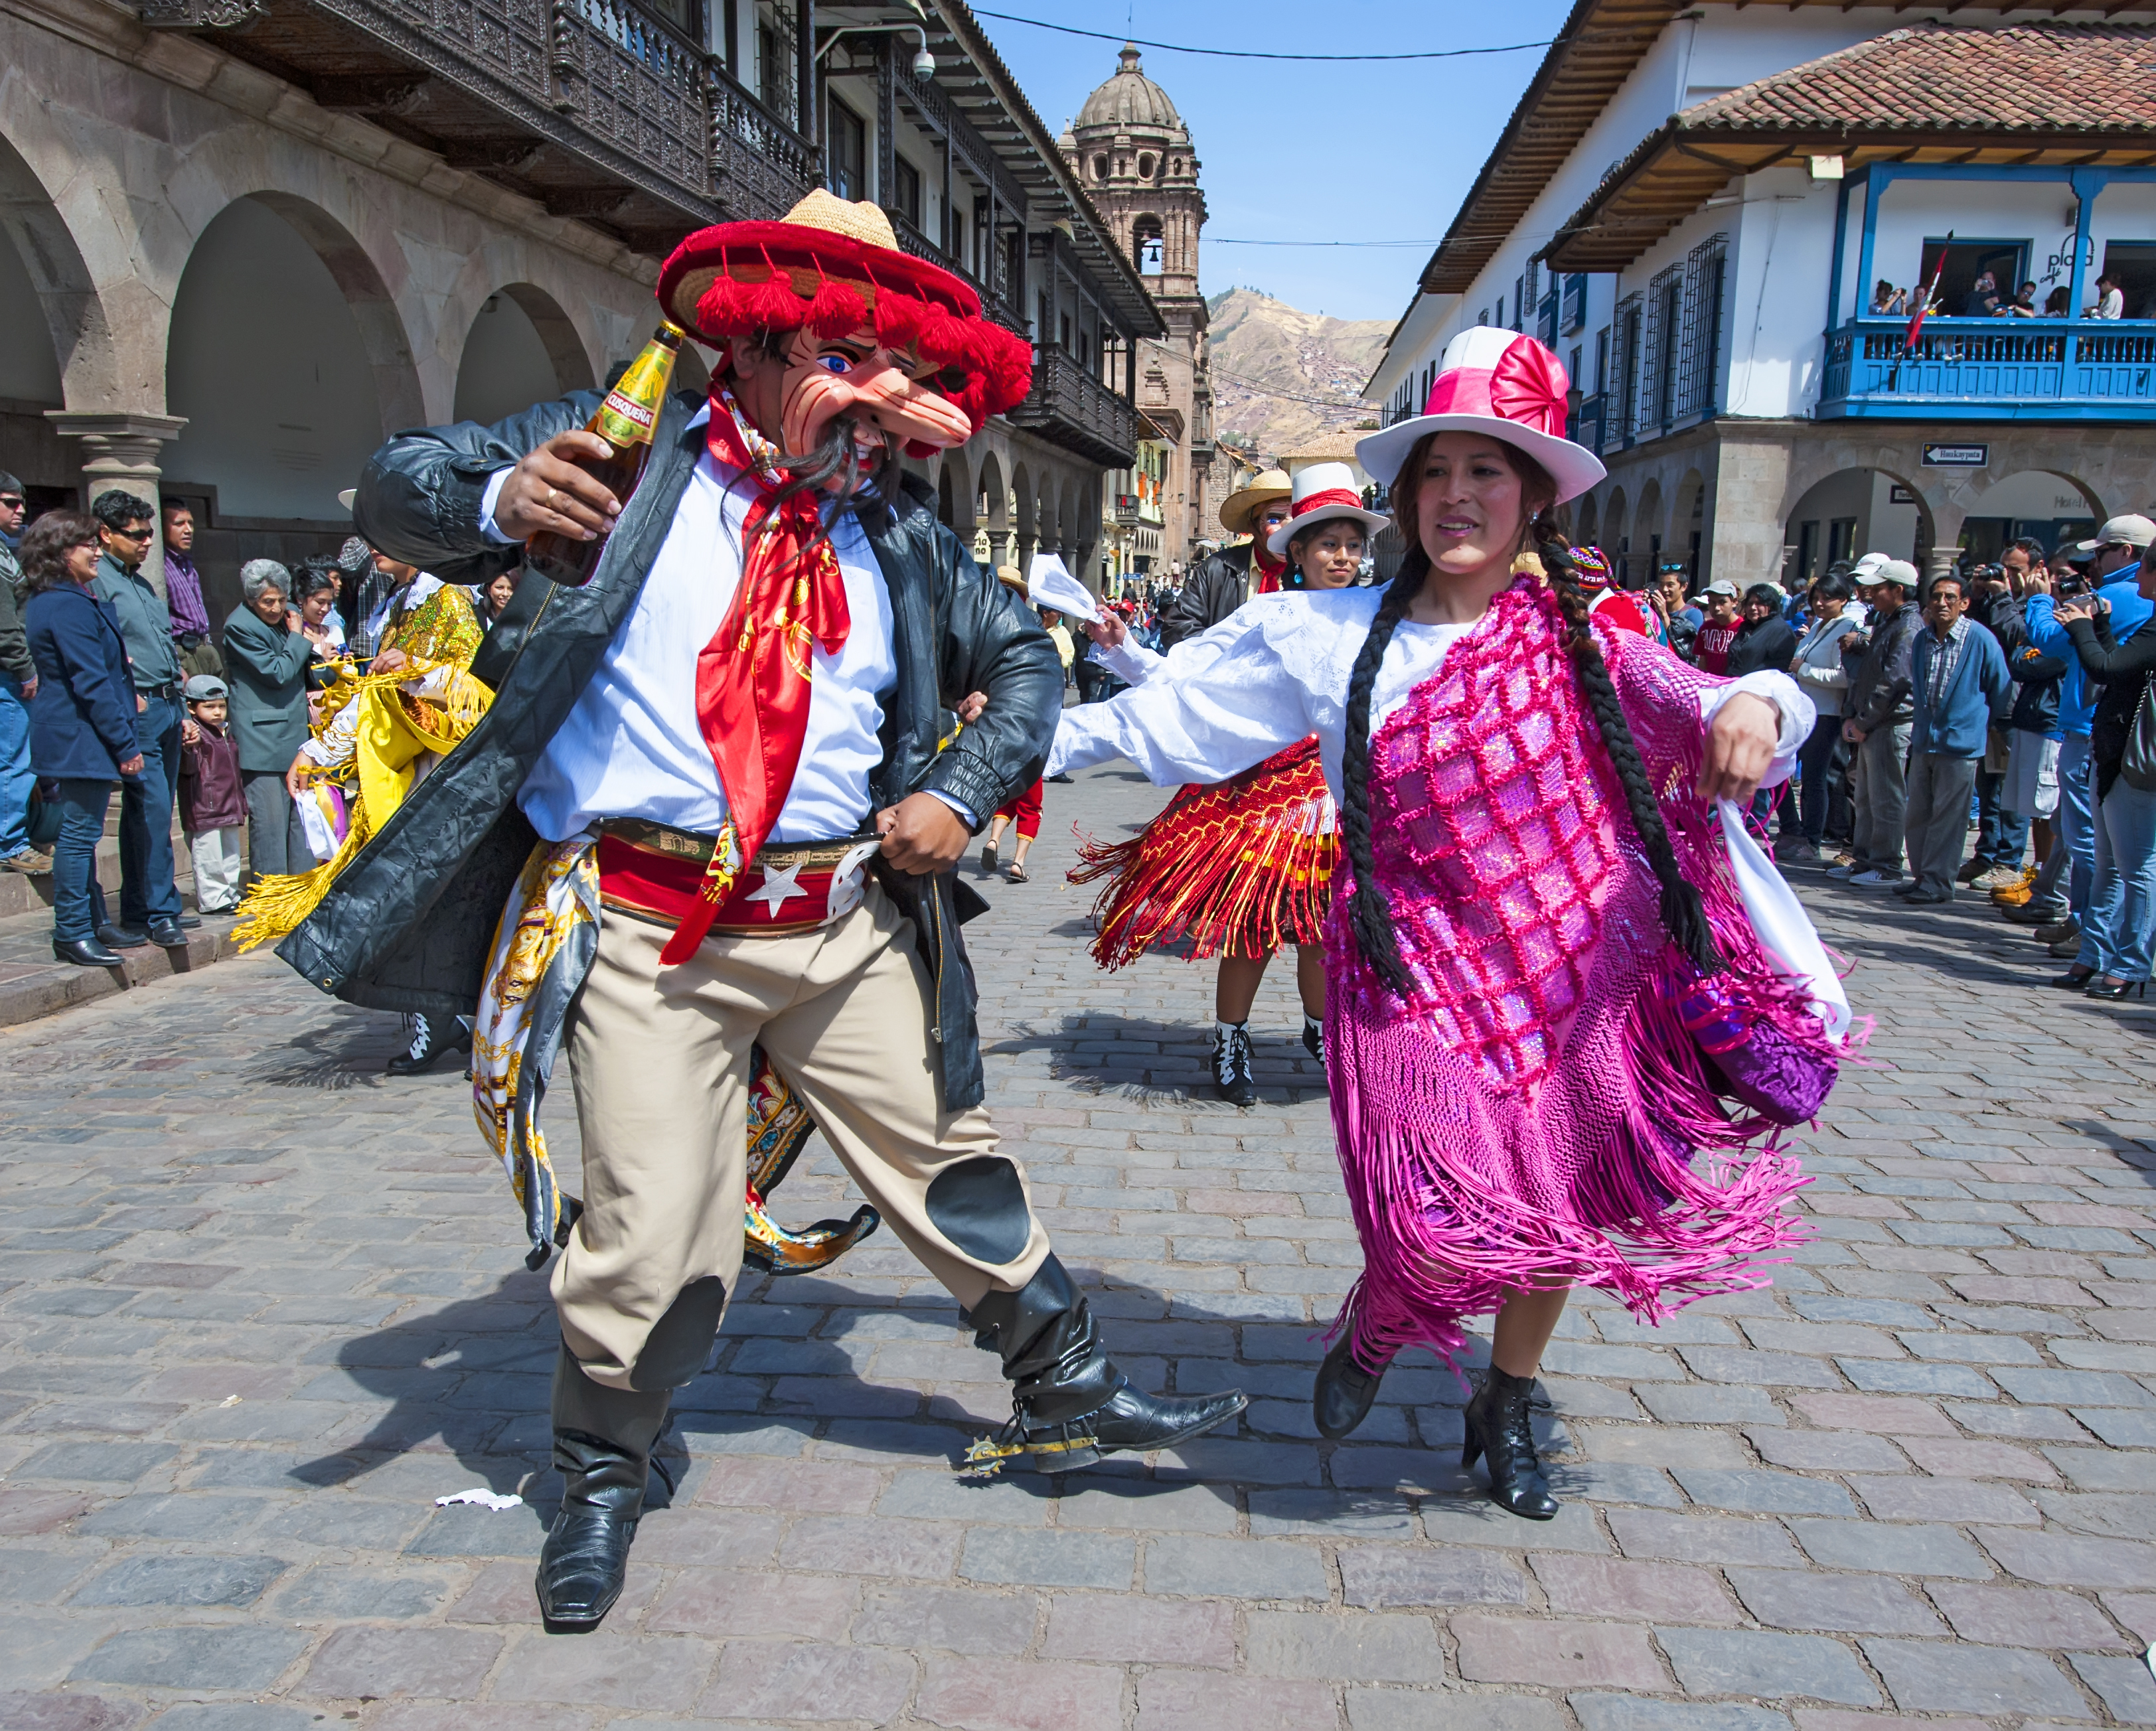 Compadres and Comadres Days: Celebrations inaugurating Cusco's famous Carnival season